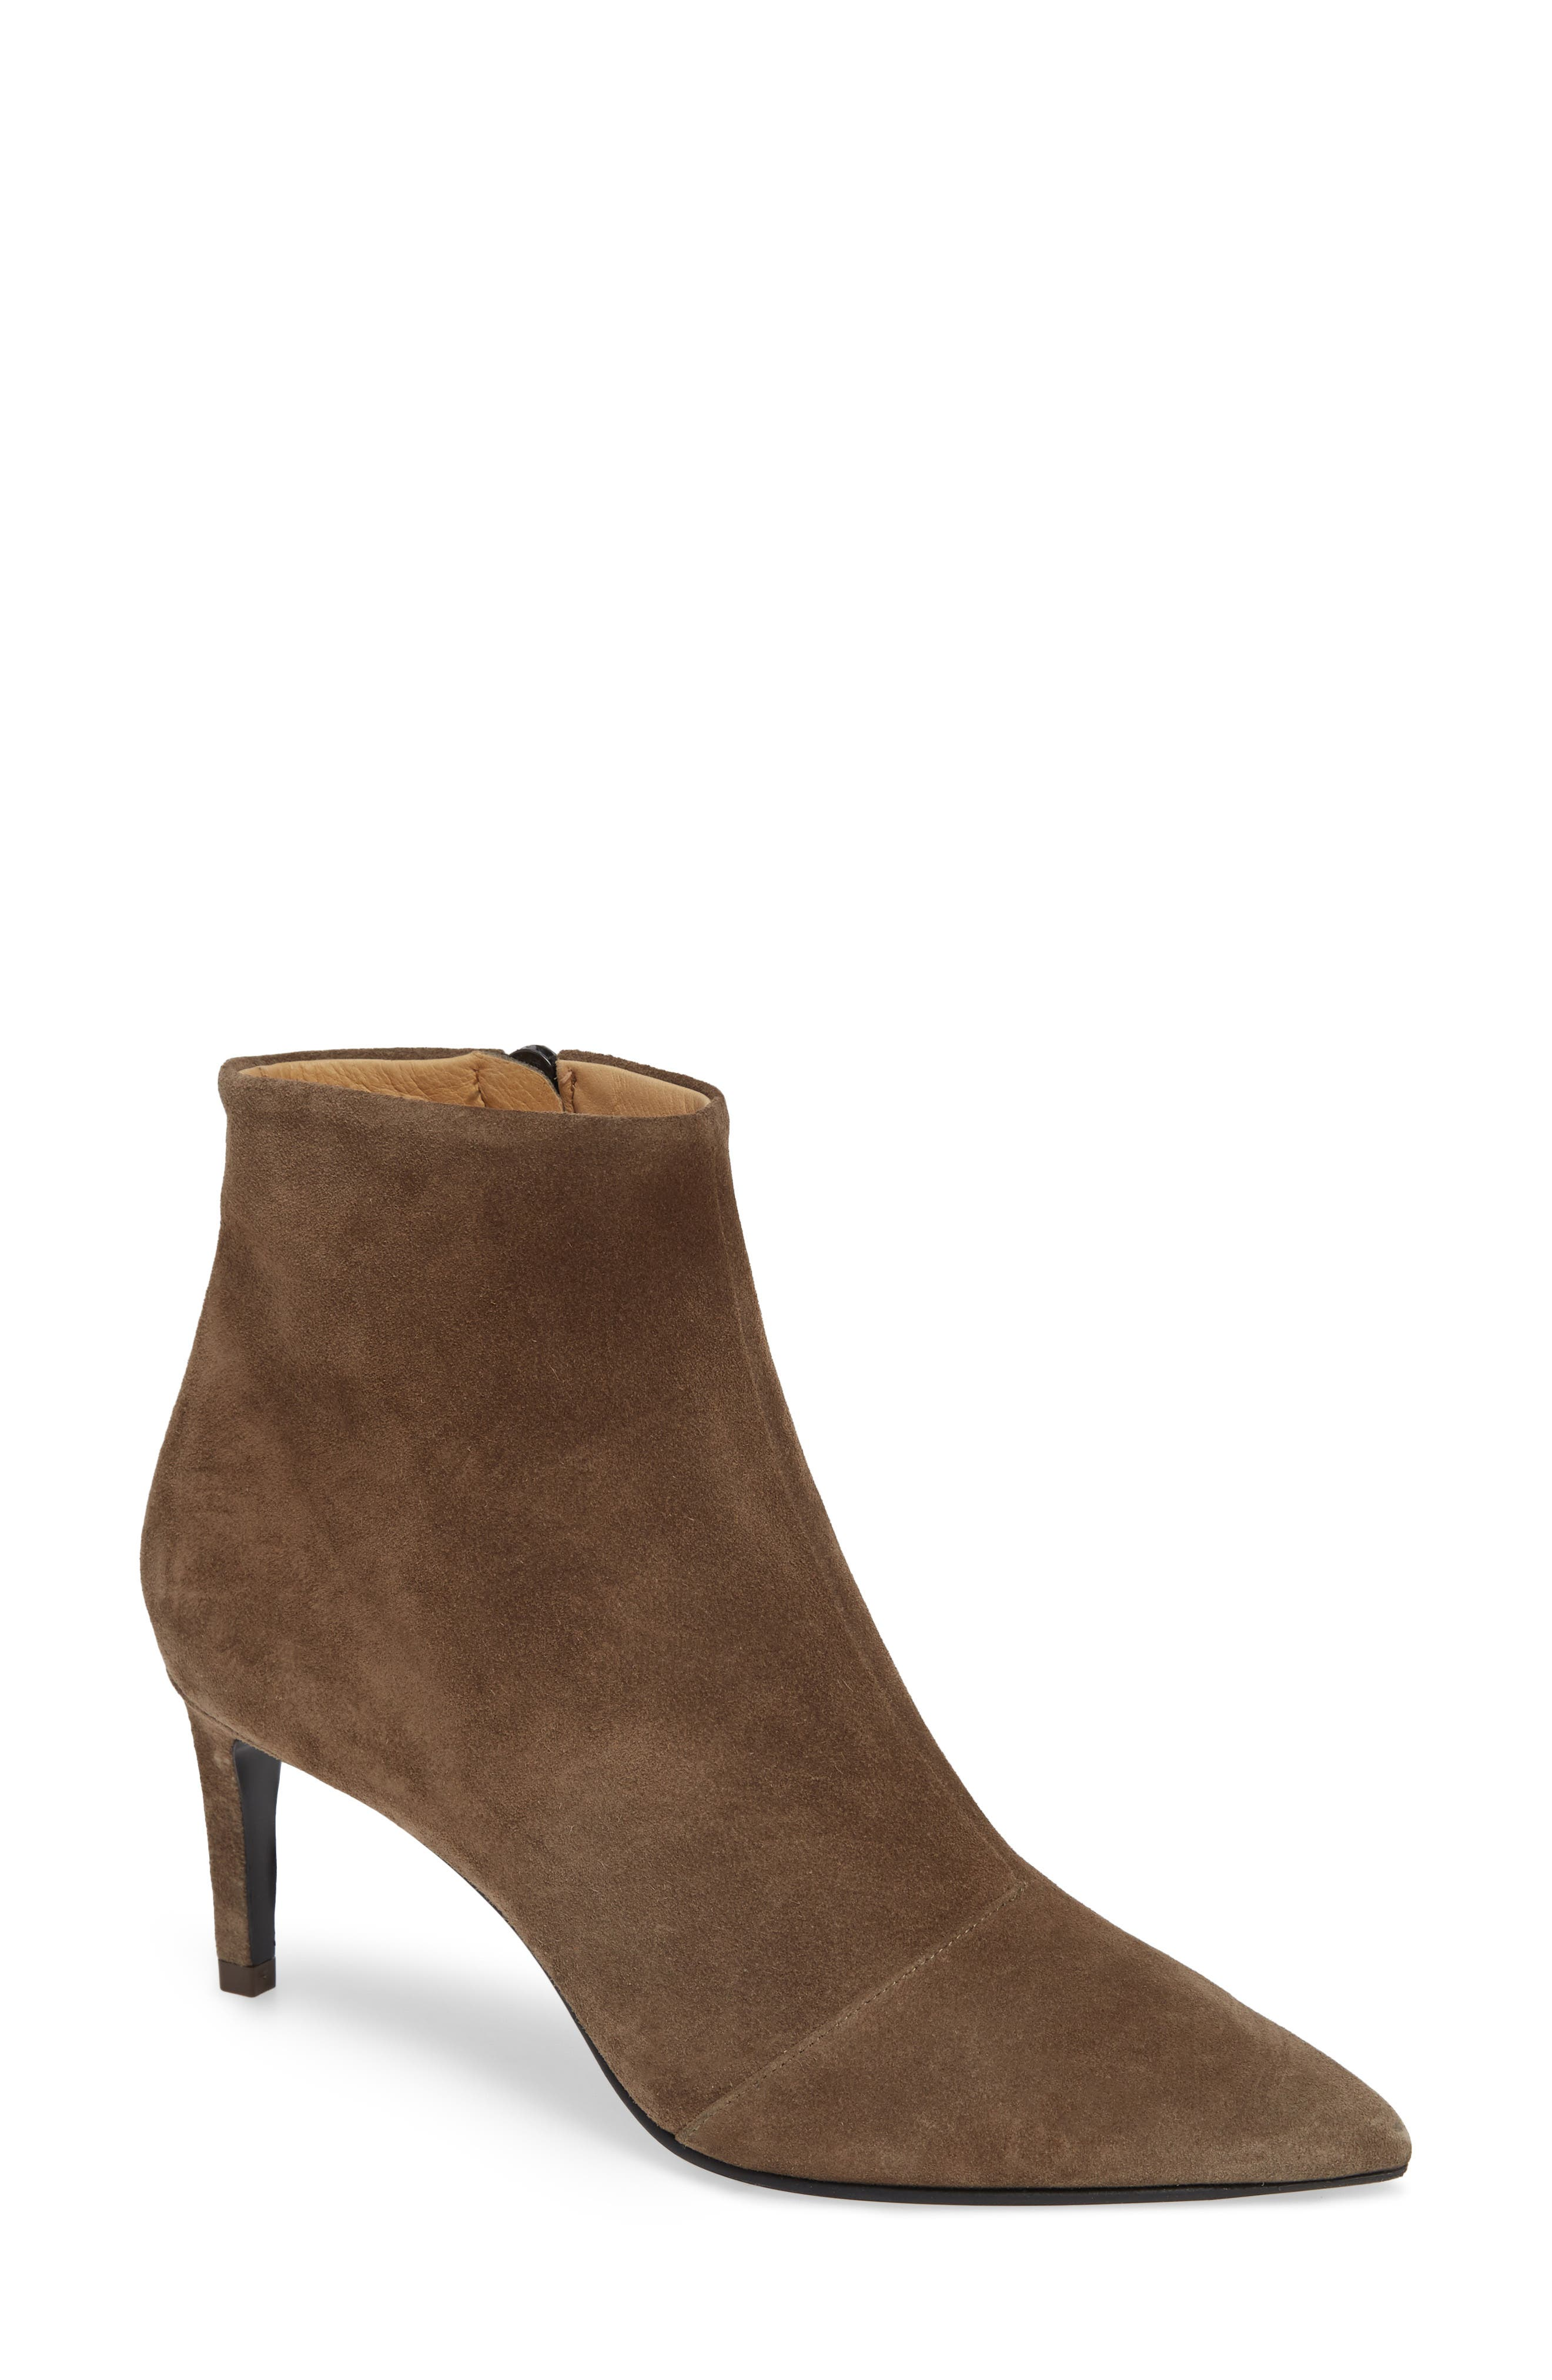 Rag & Bone Beha Pointy Toe Bootie - Brown